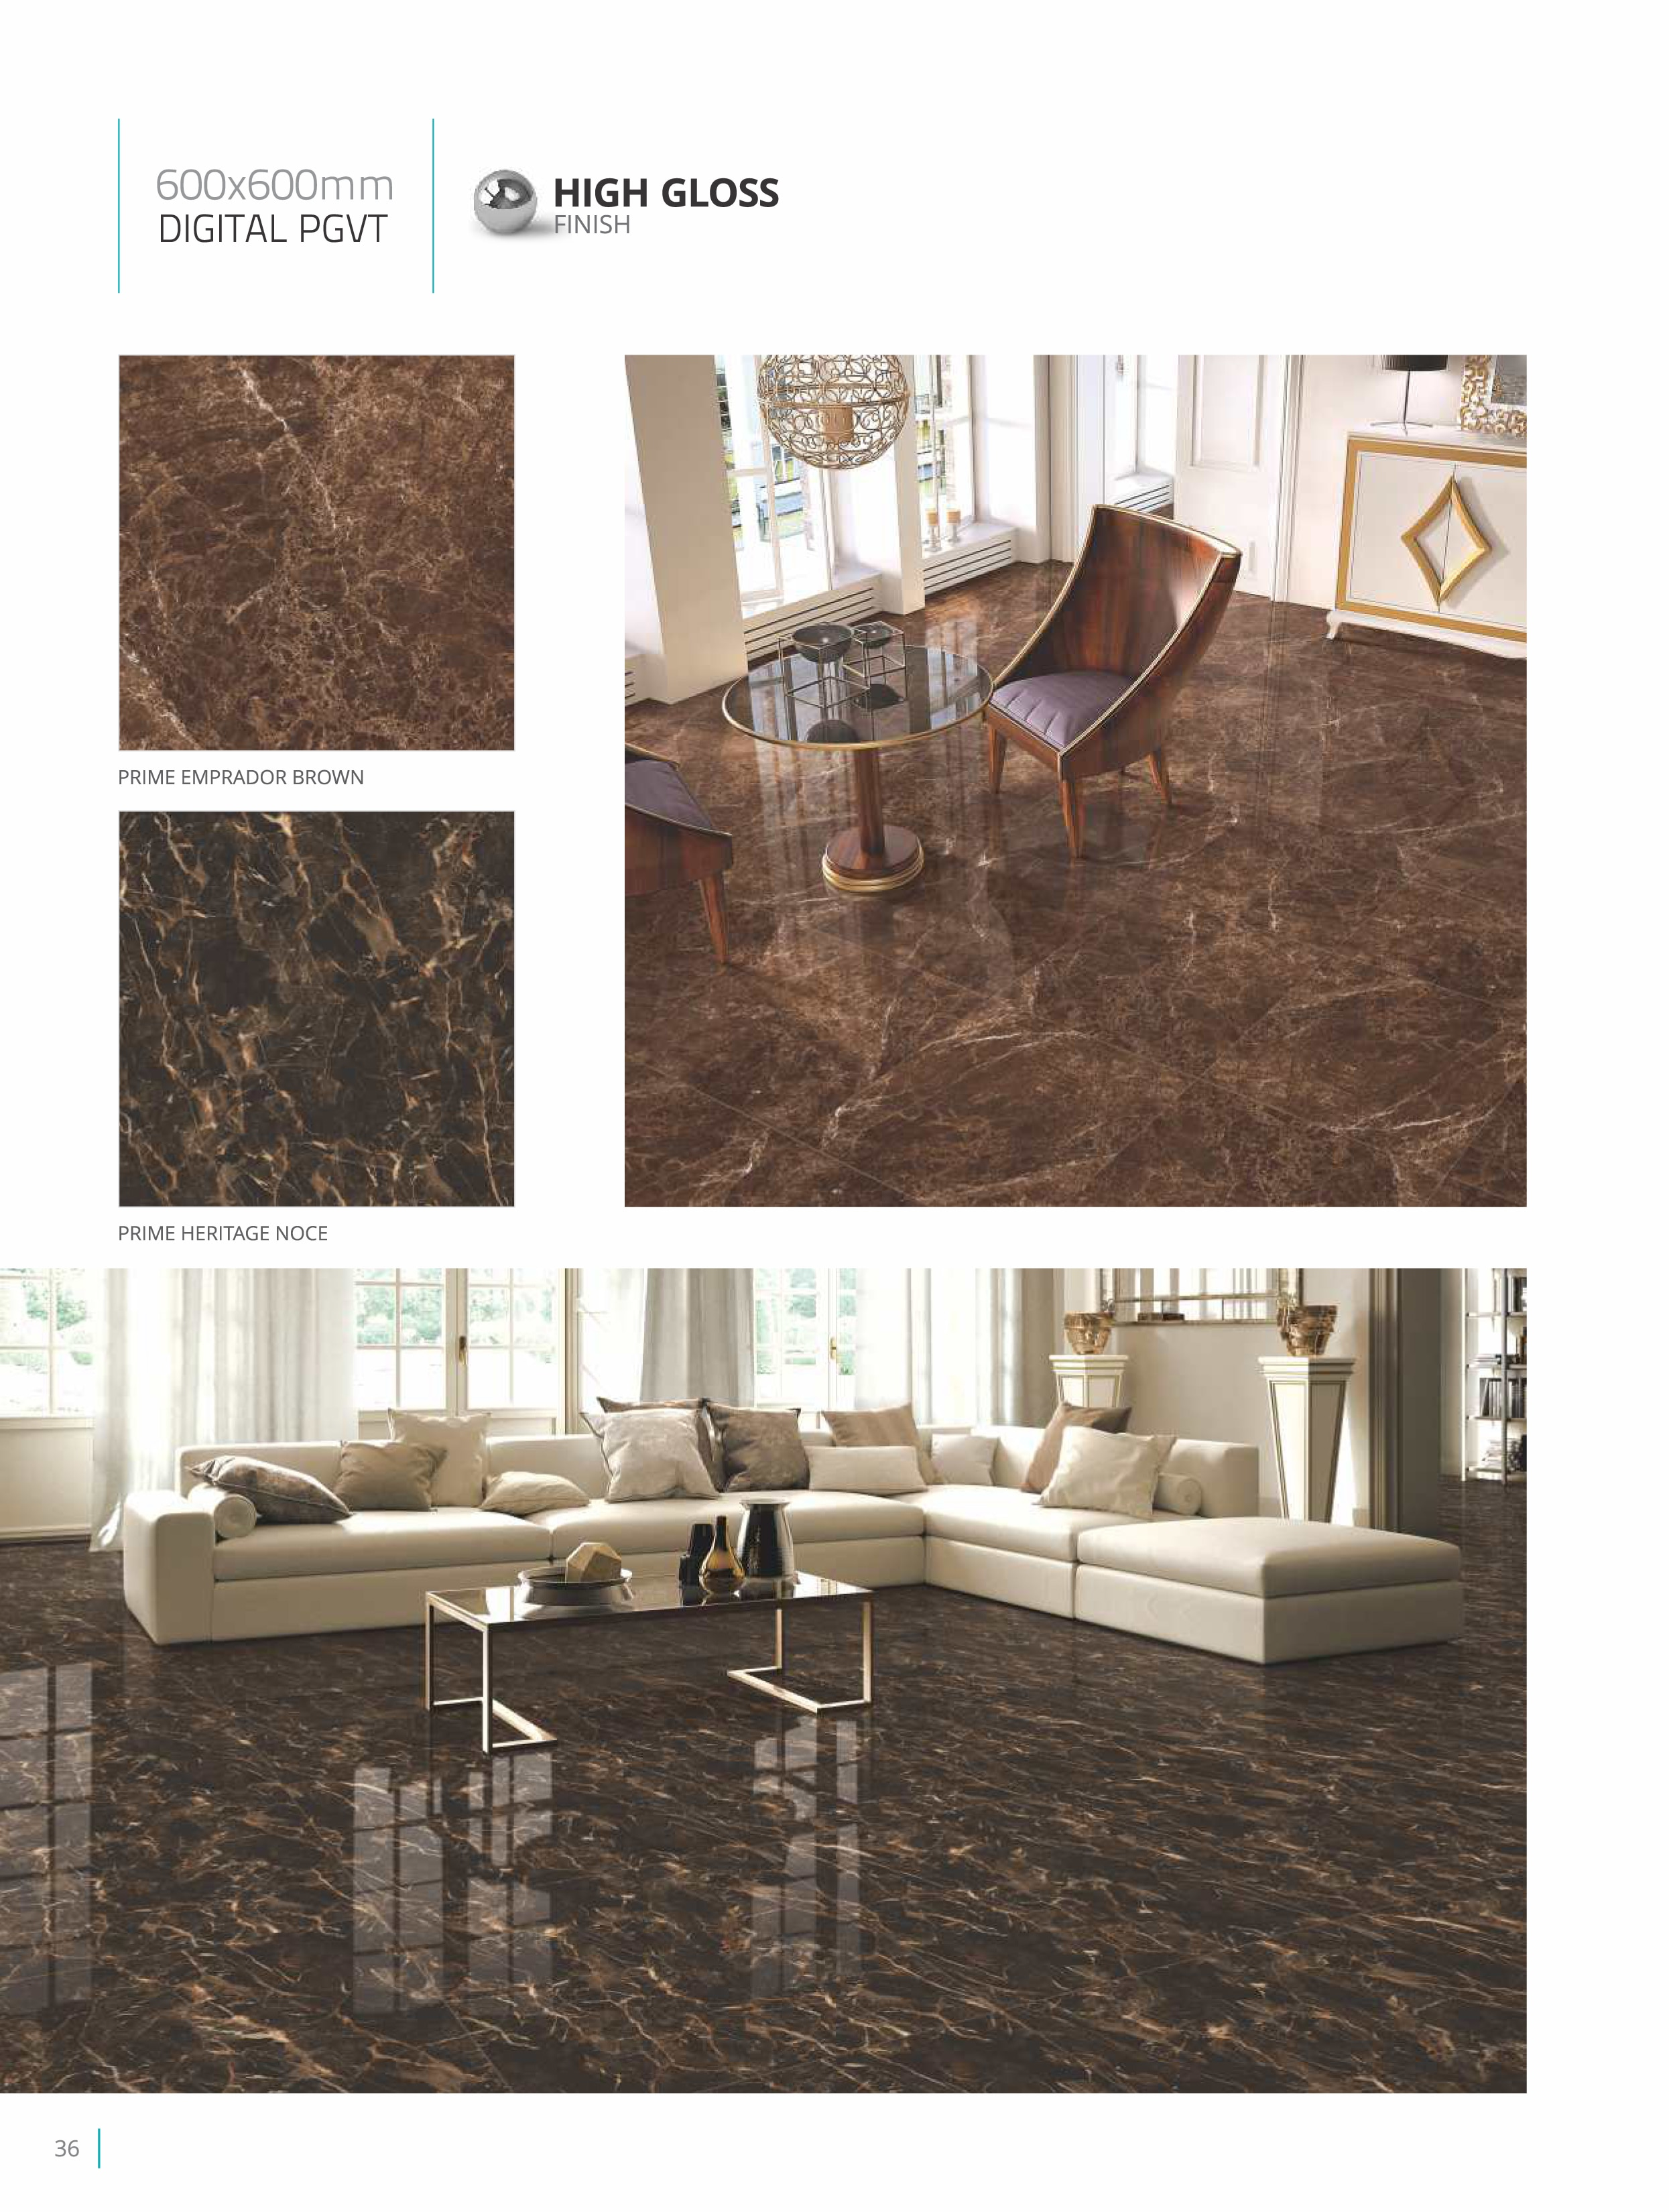 High grade plethora lycos ceramic in rajkot india polished porcelain tiles manufacturer from india as a principal organization of the global market we dailygadgetfo Images